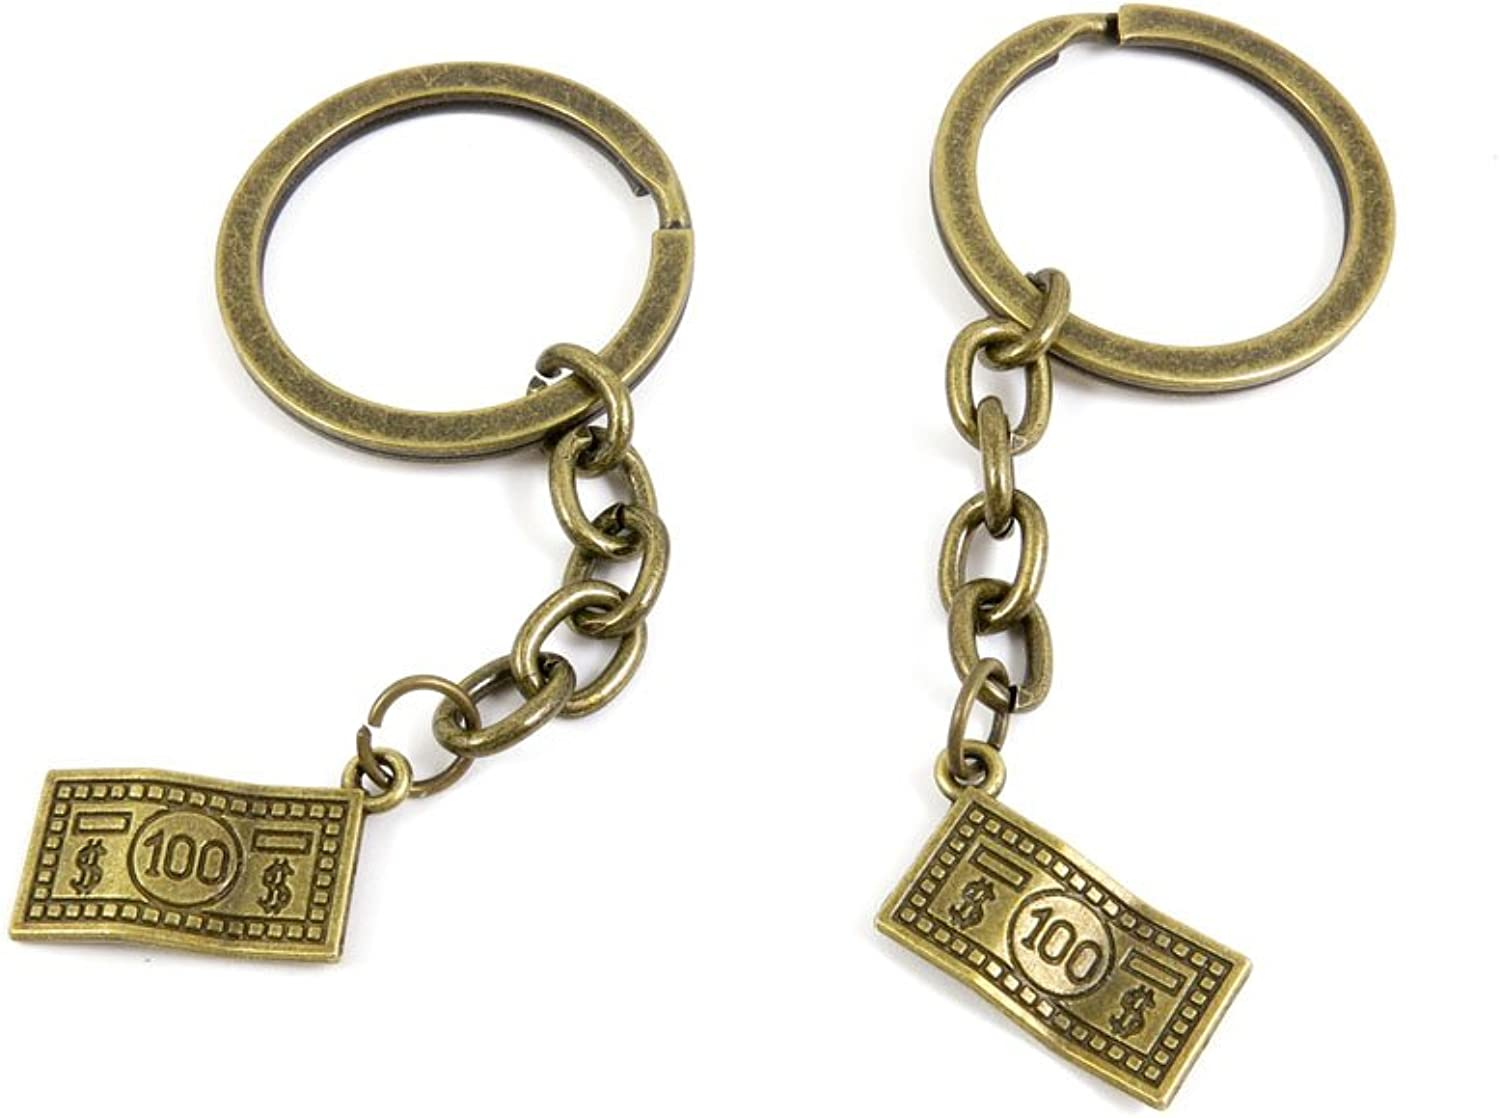 240 Pieces Fashion Jewelry Keyring Keychain Door Car Key Tag Ring Chain Supplier Supply Wholesale Bulk Lots D1ZP2 100 US Dollar